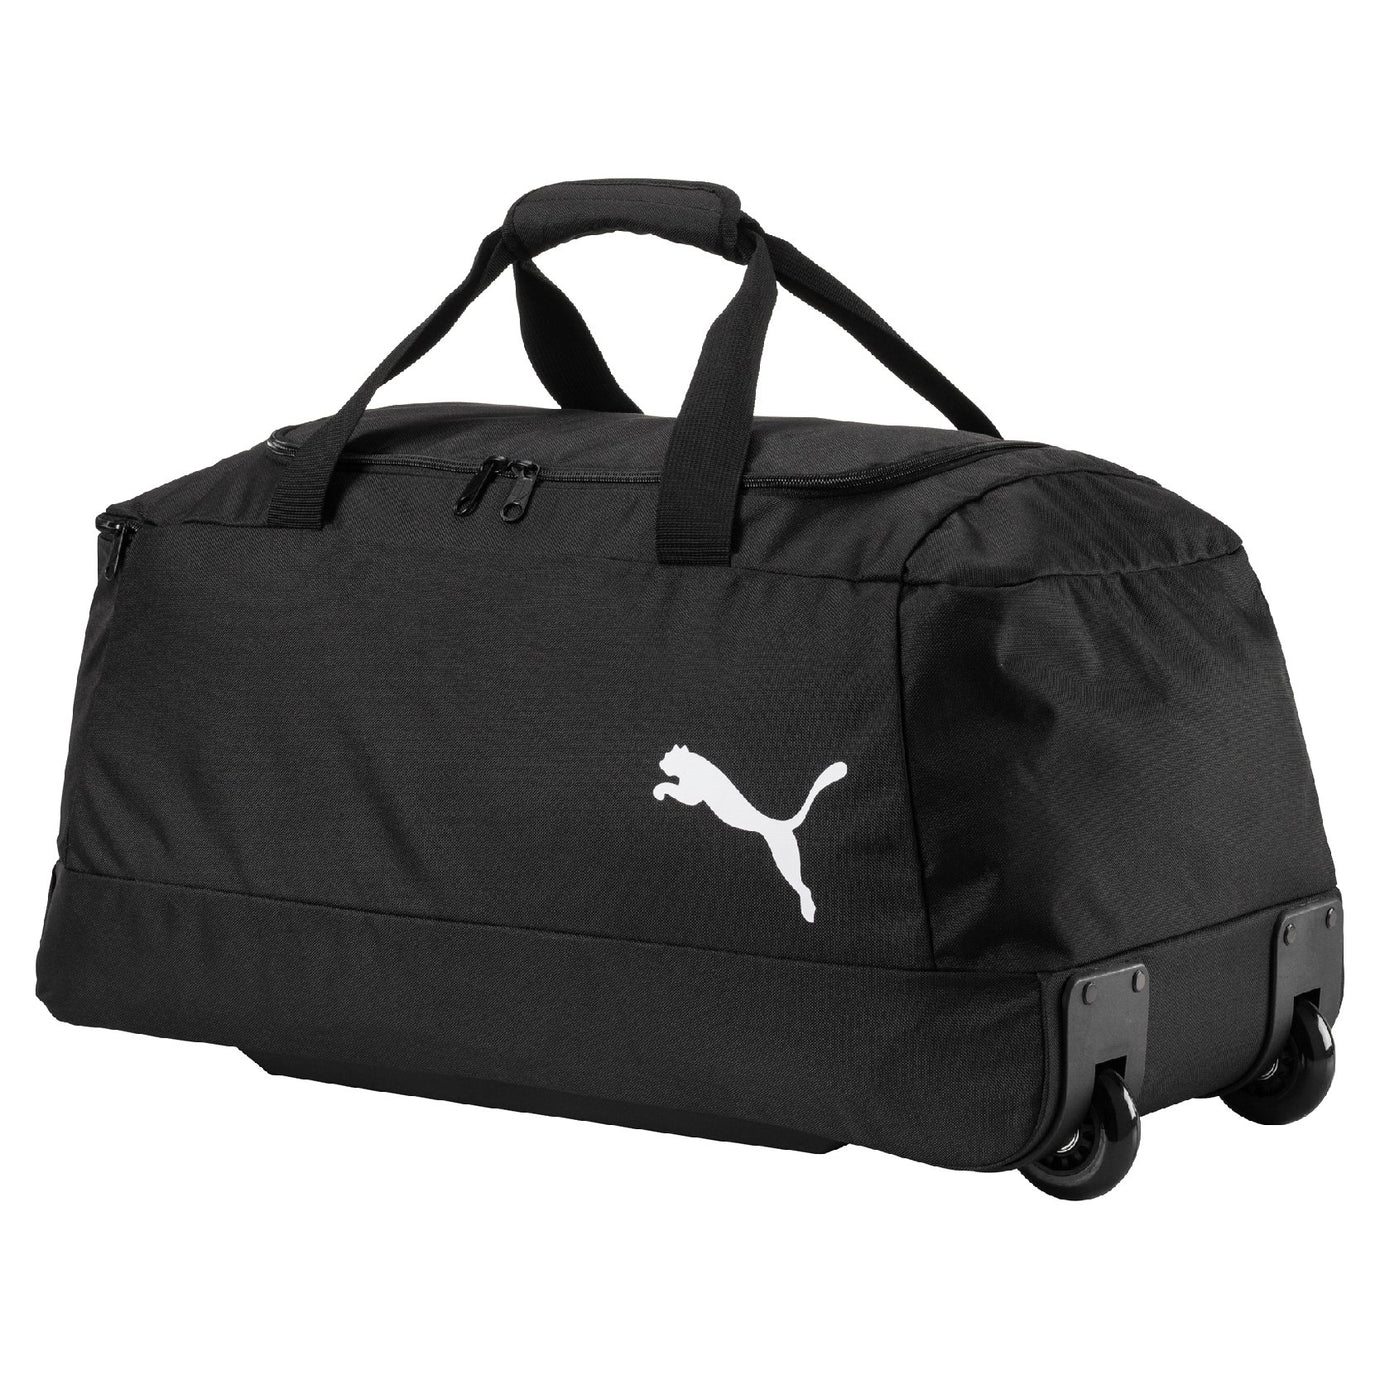 PUMA PRO TRAINING II M BAG WHEELS BLACK